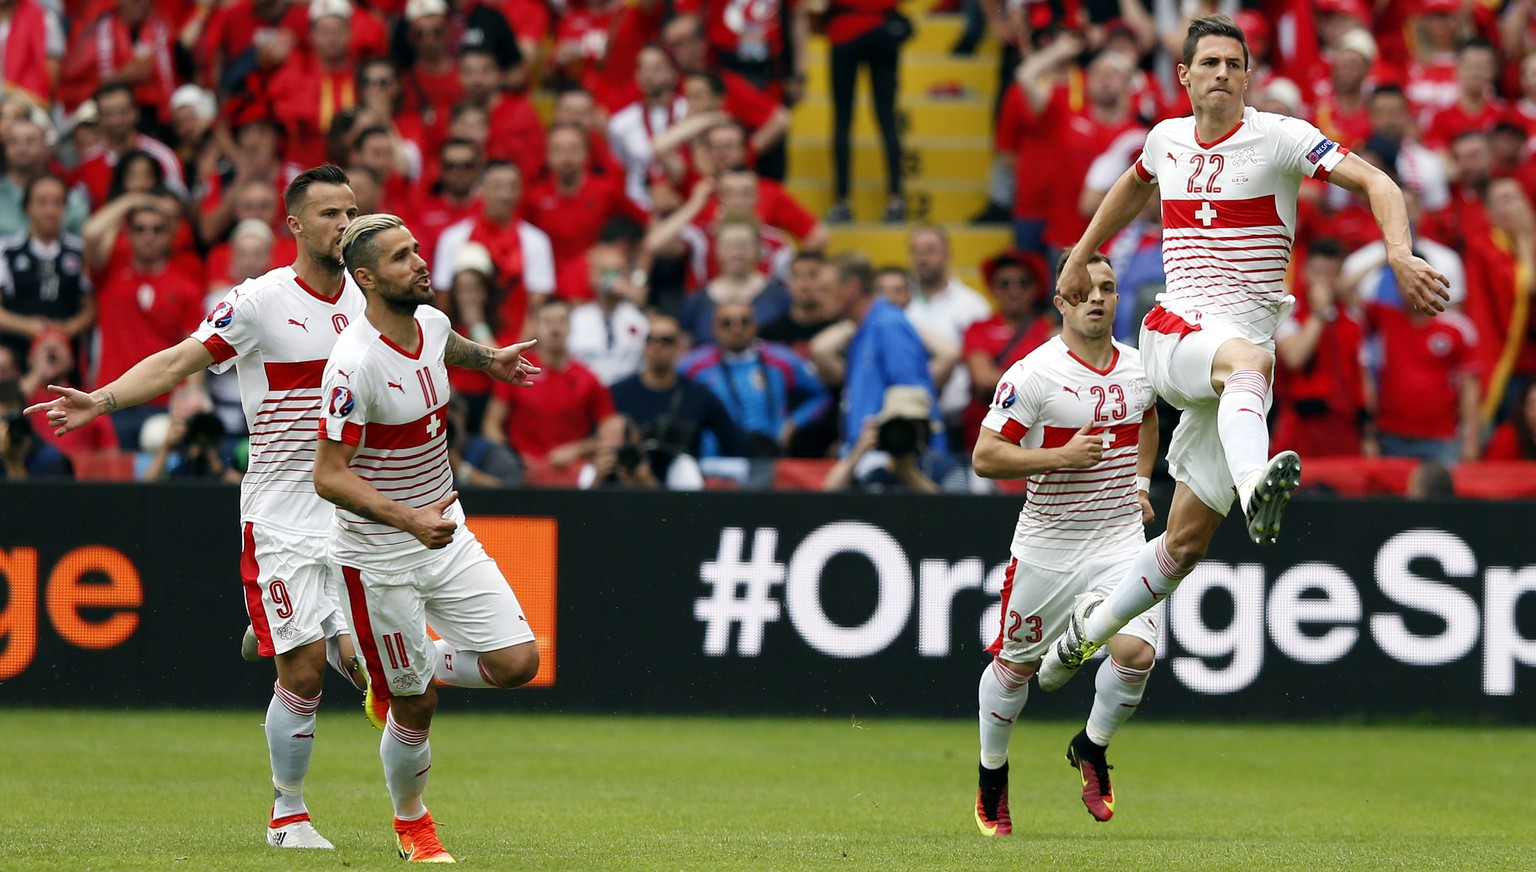 epa05356925 Fabian Schaer (R) of Switzerland celebrates with his teammates after scoring the 1-0 lead during the UEFA EURO 2016 group A preliminary round match between Albania and Switzerland at Stade Bollaert-Delelis in Lens Agglomeration, France, 11 June 2016.